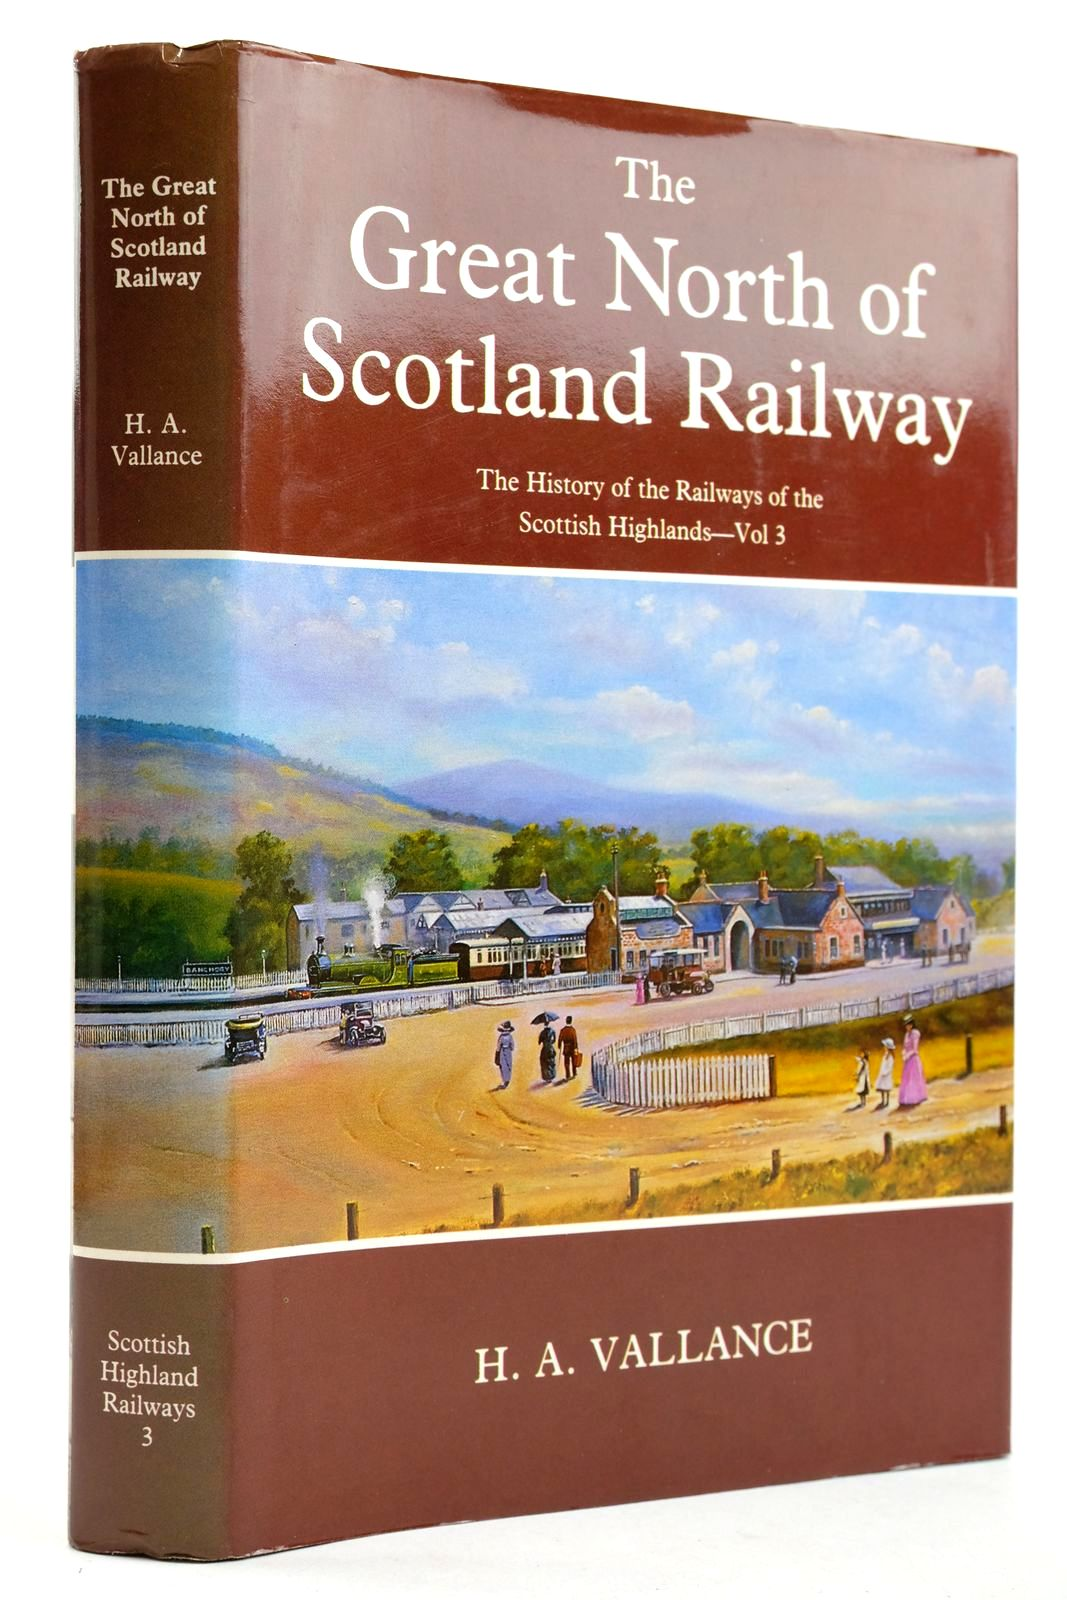 Photo of THE GREAT NORTH OF SCOTLAND RAILWAY written by Vallance, H.A. published by David St John Thomas, David & Charles (STOCK CODE: 2133112)  for sale by Stella & Rose's Books